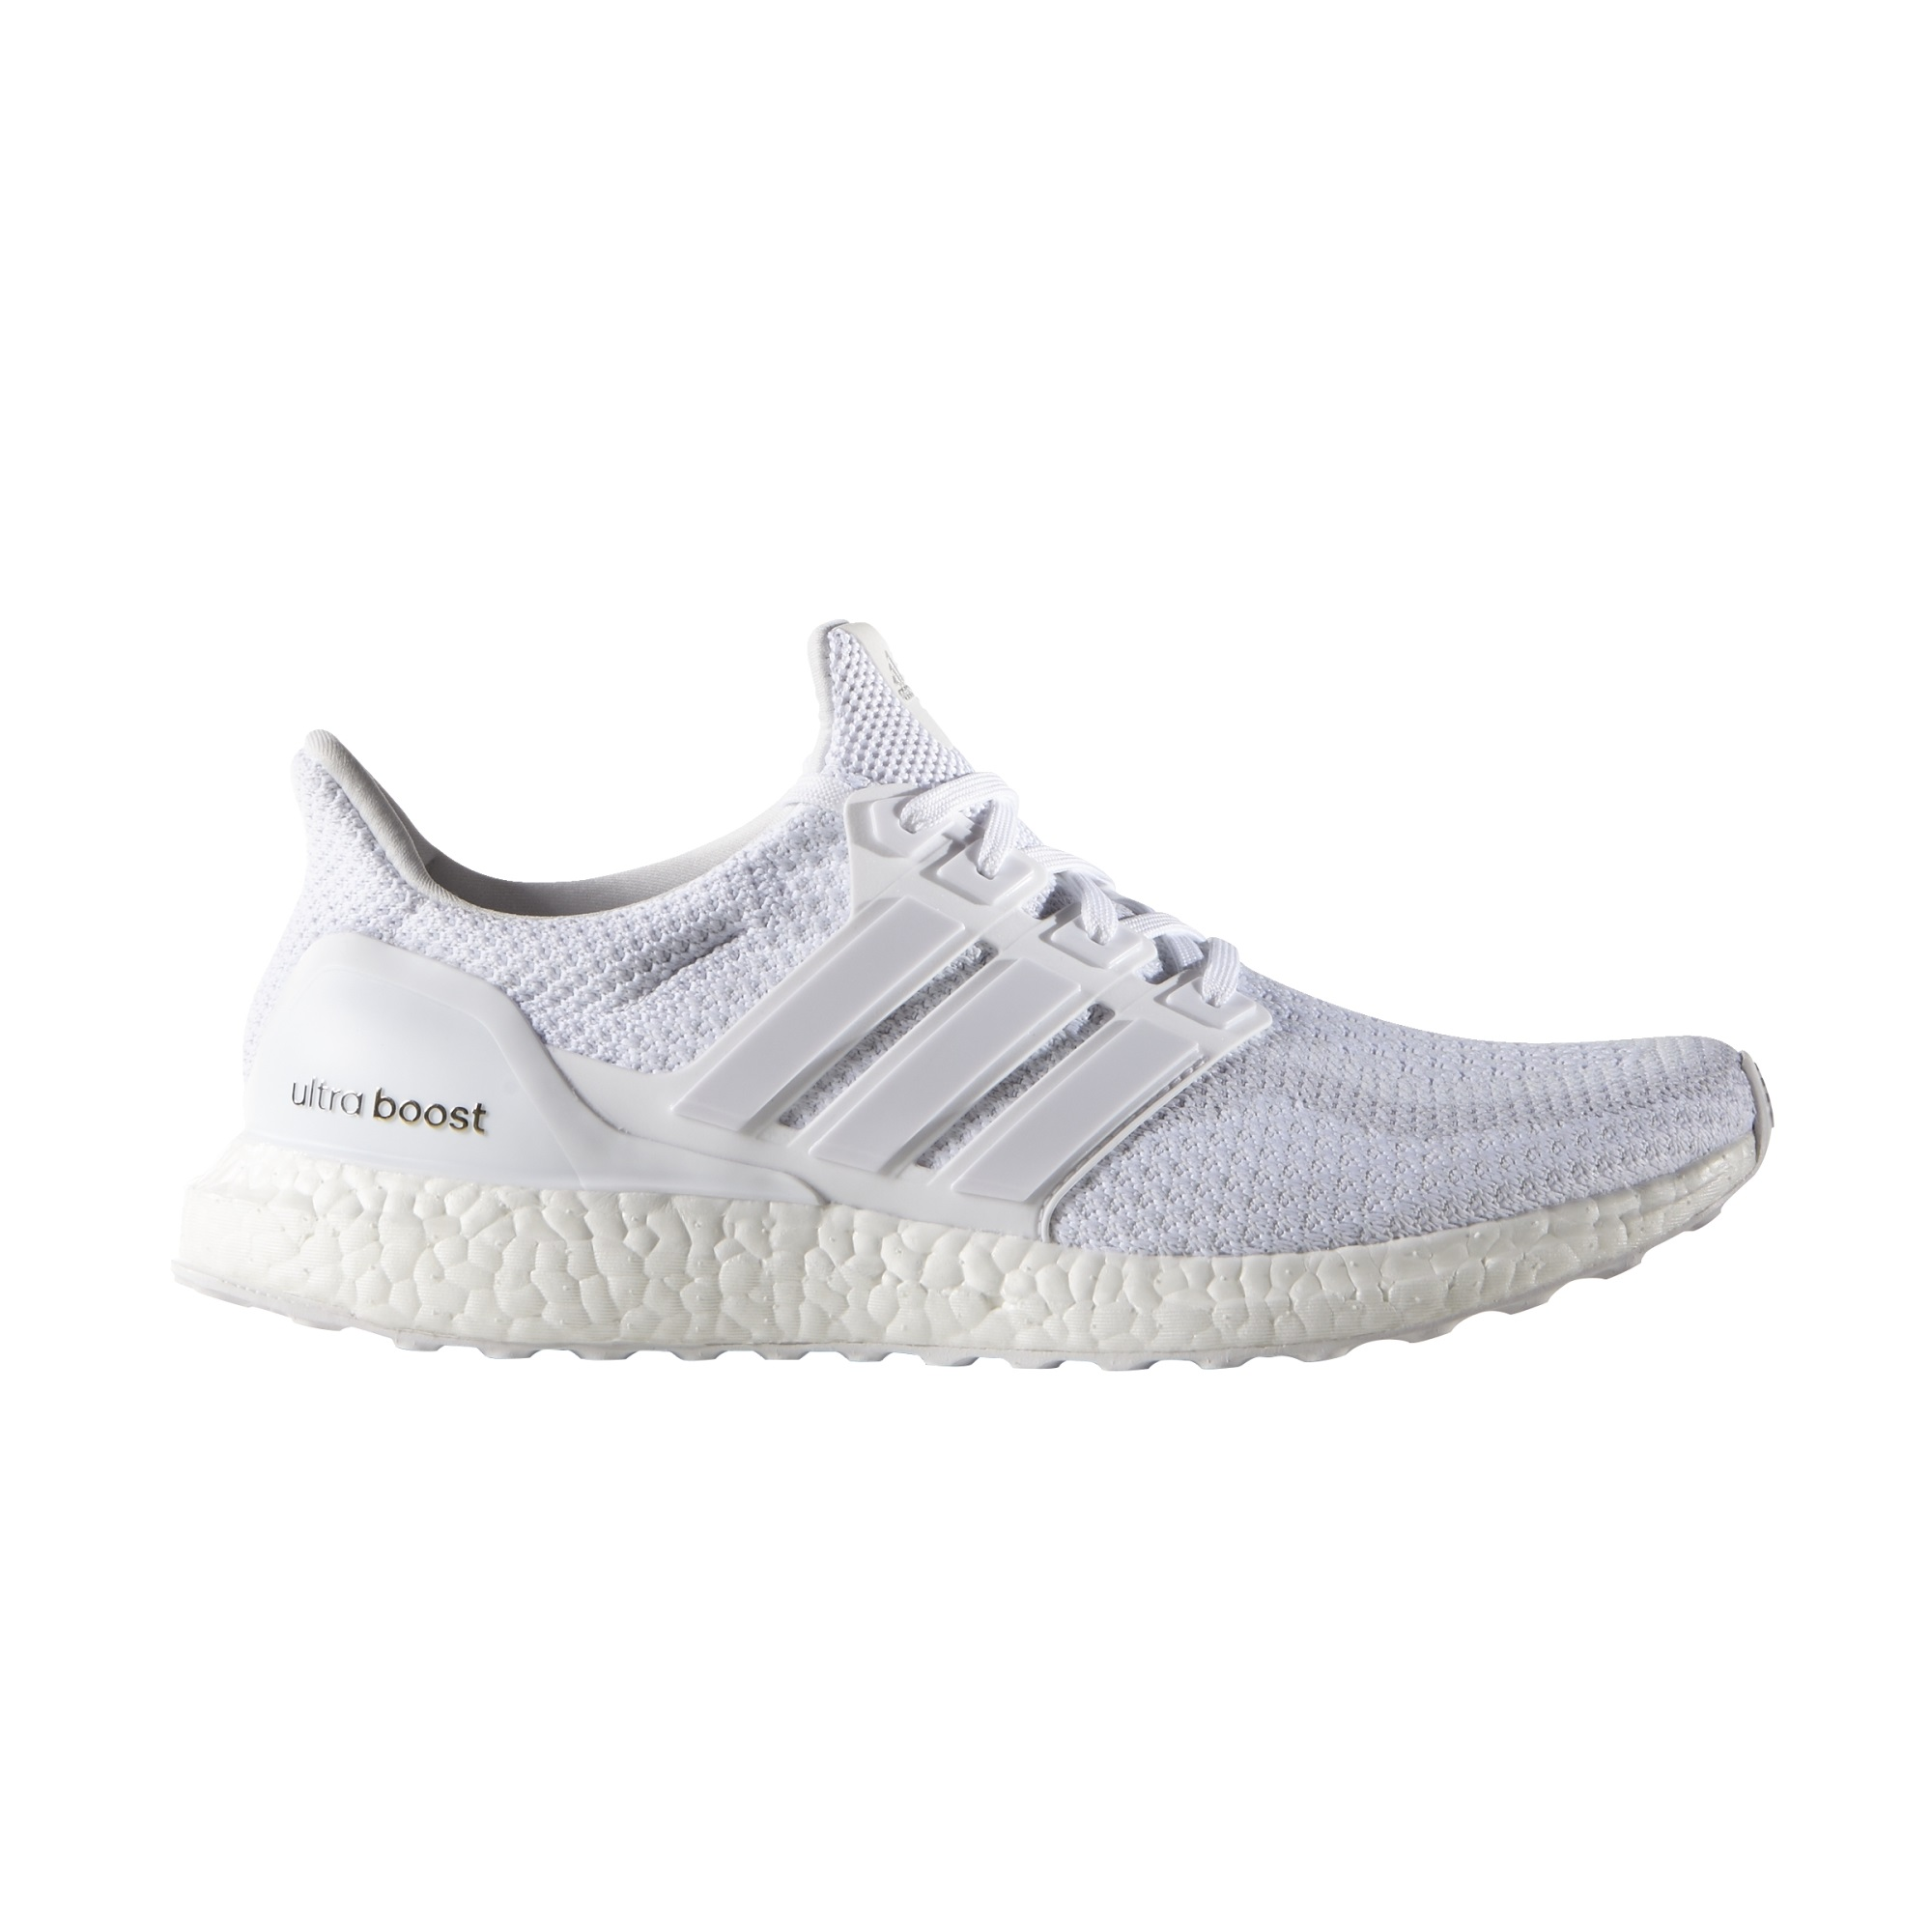 bedb1ce4e4db2 Adidas Ultra Boost White - Alton Sports Running Specialist